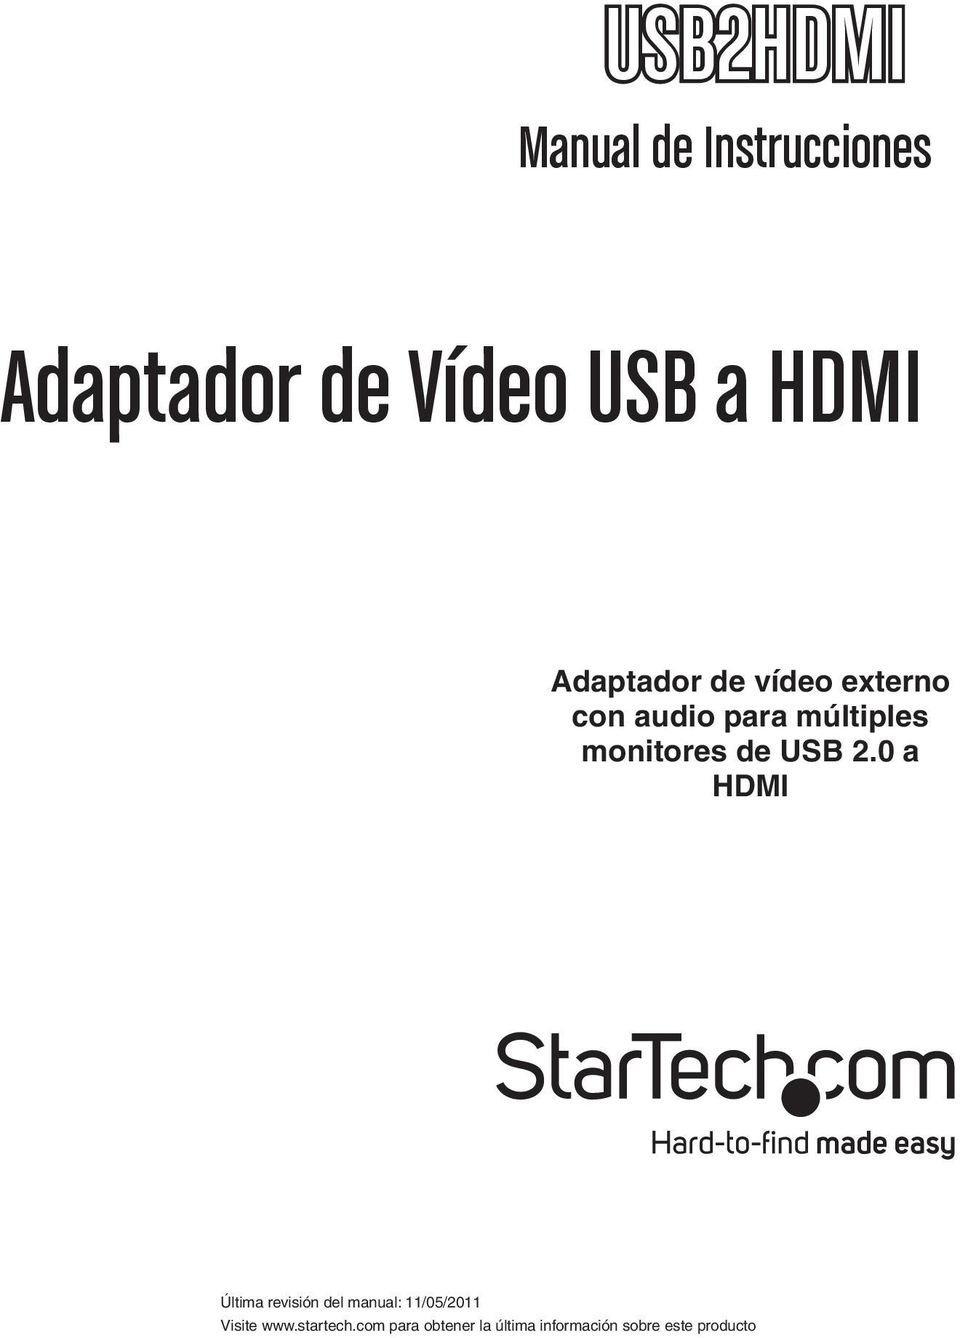 USB 2.0 a HDMI Última revisión del manual: 11/05/2011 Visite www.